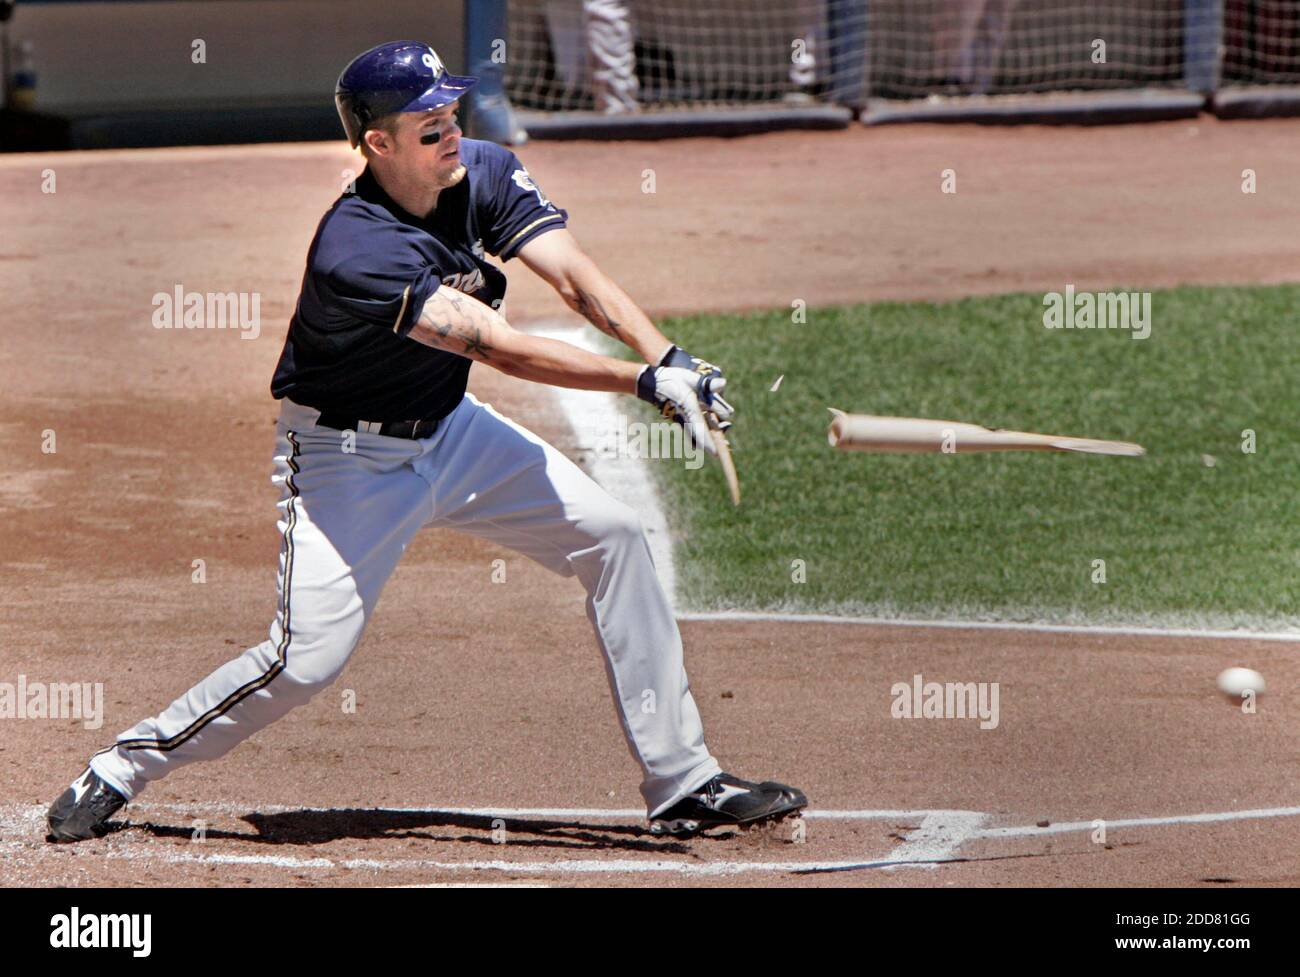 The Milwaukee Brewers' Corey Hart brings in the Brewers first run of the game with this broken bat single against the Houston Astros in the first inning. The Brewers defeated the Astros, 10-1, at Miller Park in Milwaukee, WI, USA on June 1, 2008. Photo by MaryJo Walicki/Milwaukee Journal Sentinel/MCT/Cameleon/ABACAPRESS.COM Stock Photo